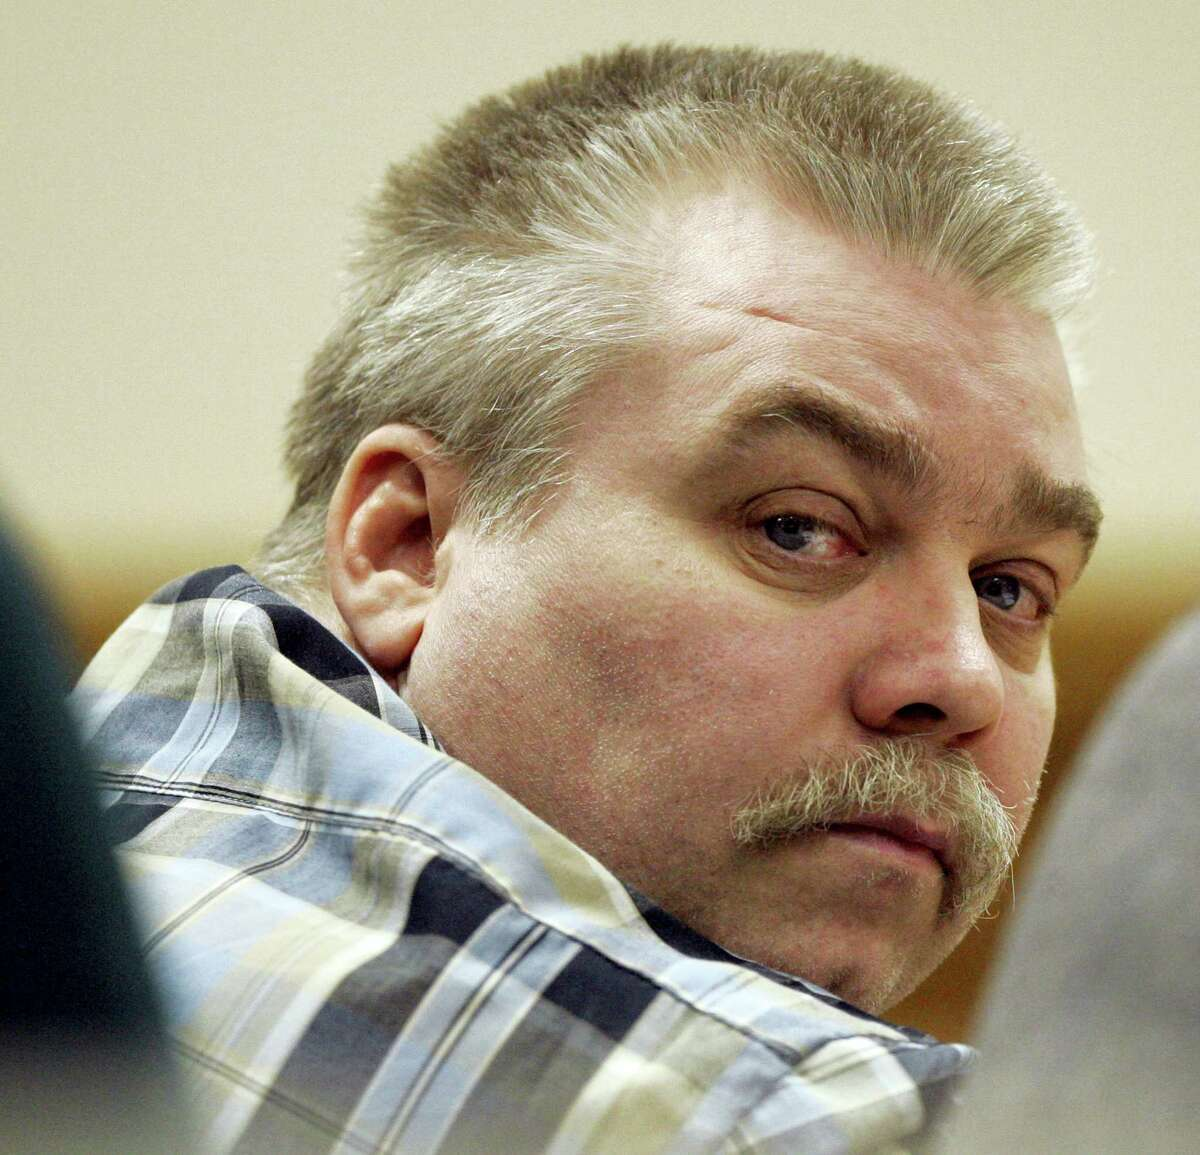 In this March 13, 2007 photo, Steven Avery listens to testimony in the courtroom at the Calumet County Courthouse in Chilton, Wis.